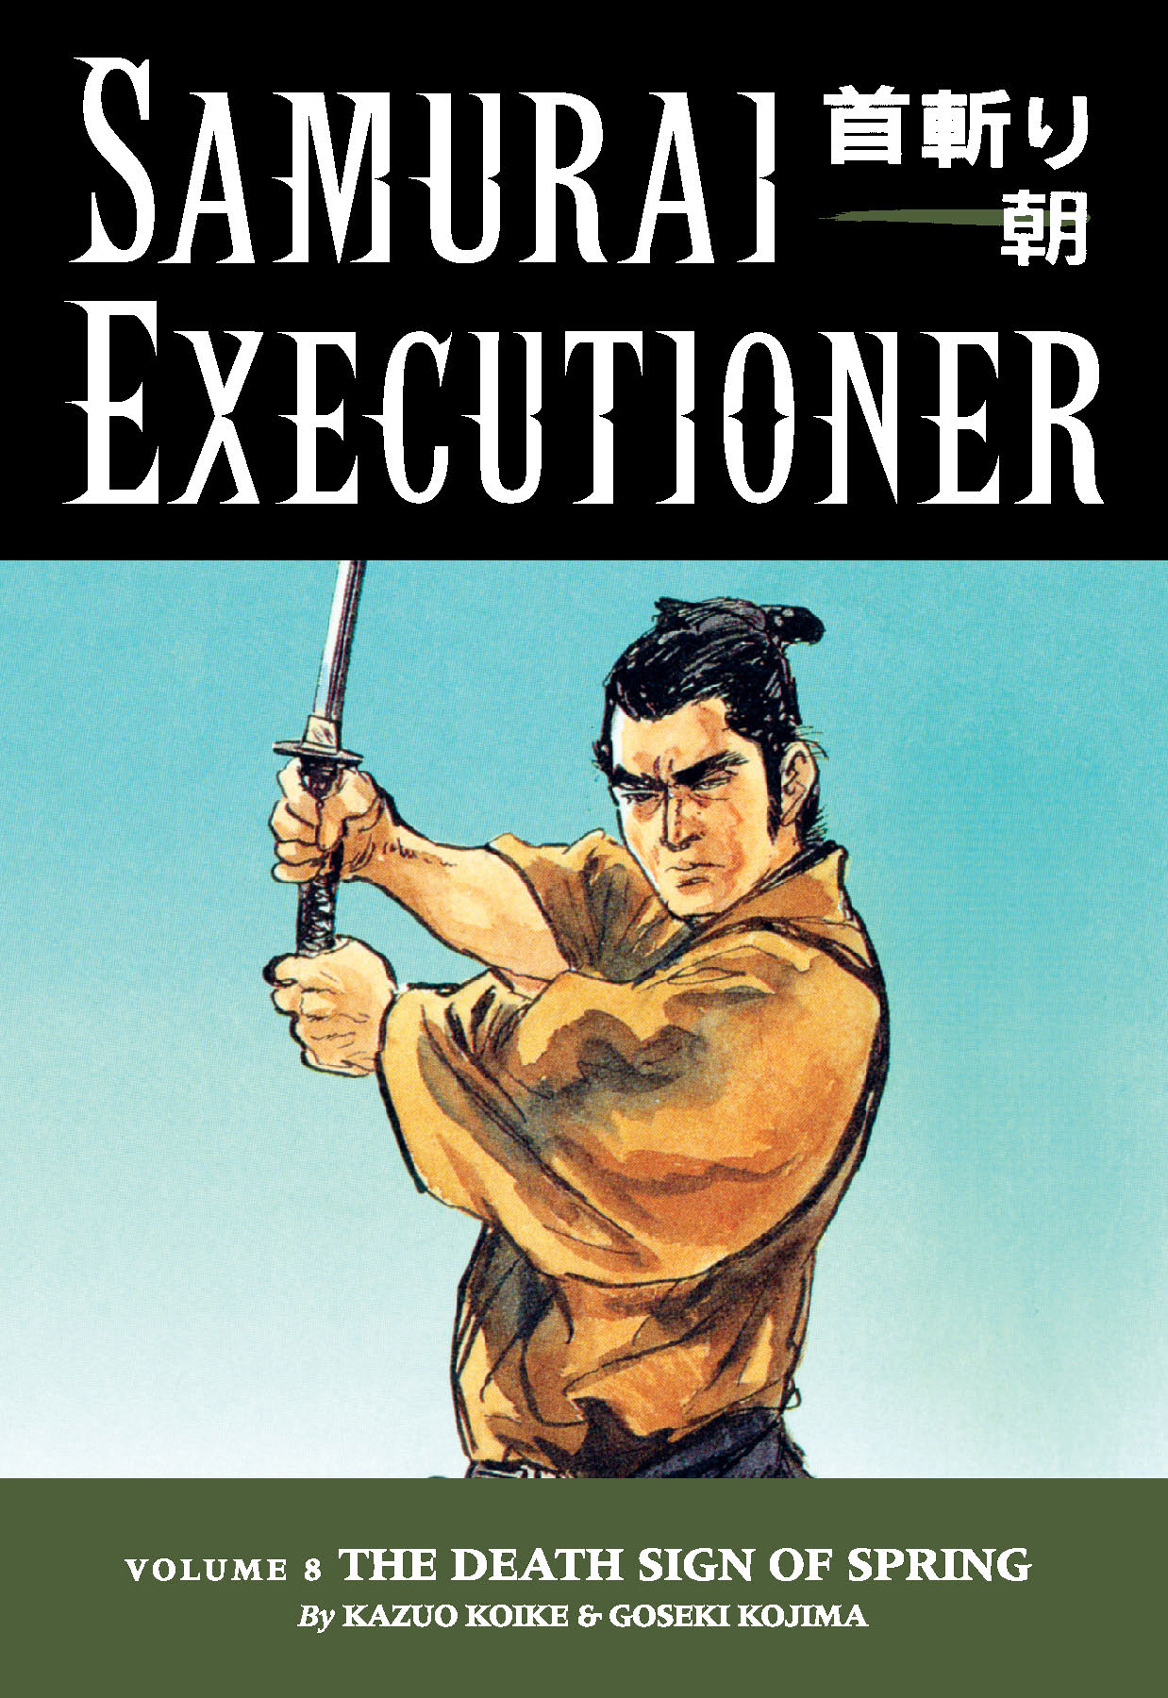 Samurai Executioner Vol. 8